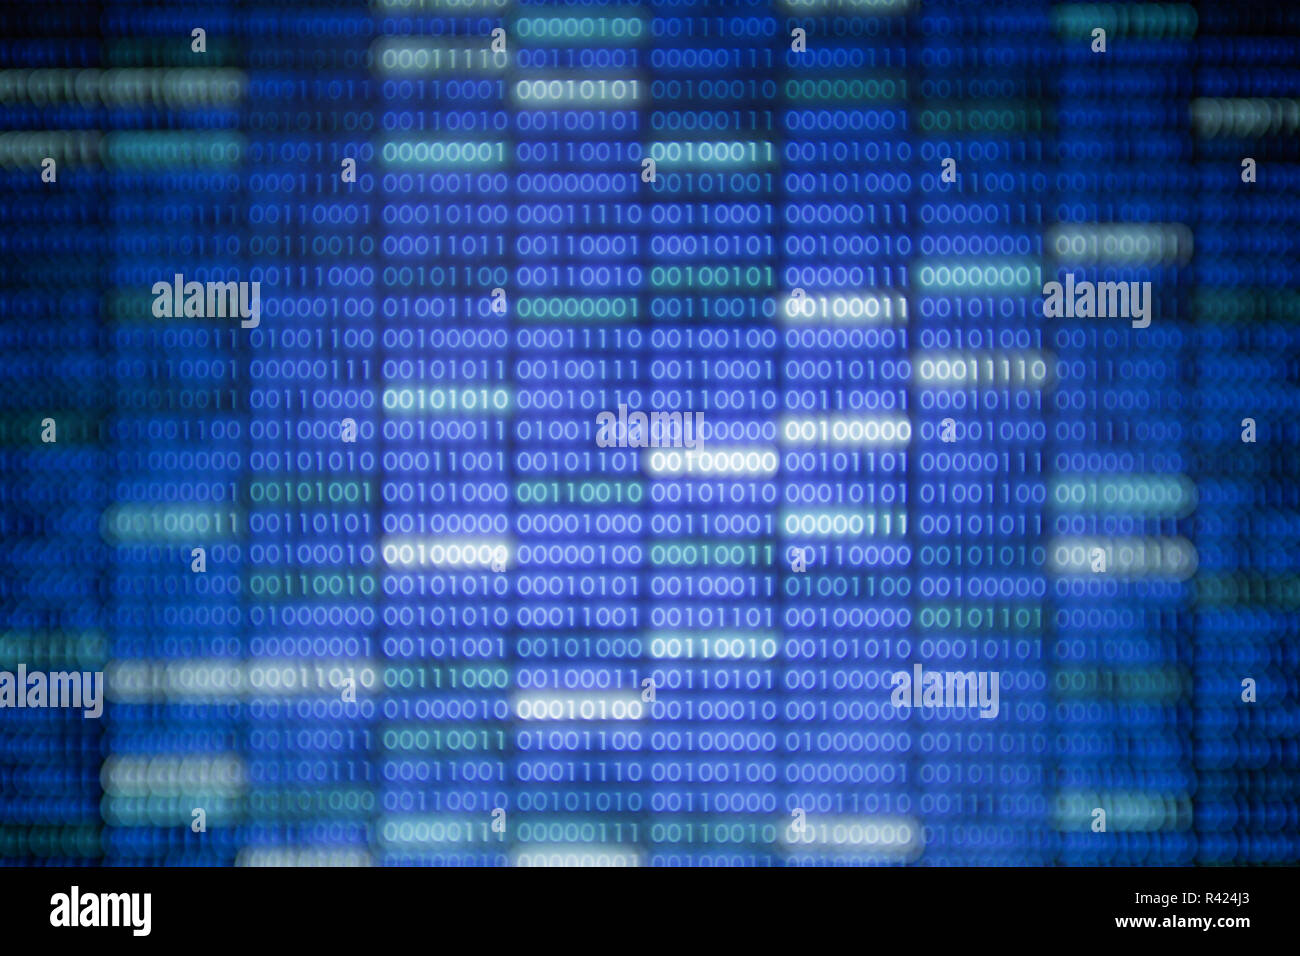 blockchain data. glowing Blue and white binary data code background for internet and cyberspace security function. block pattern of number one and zer - Stock Image